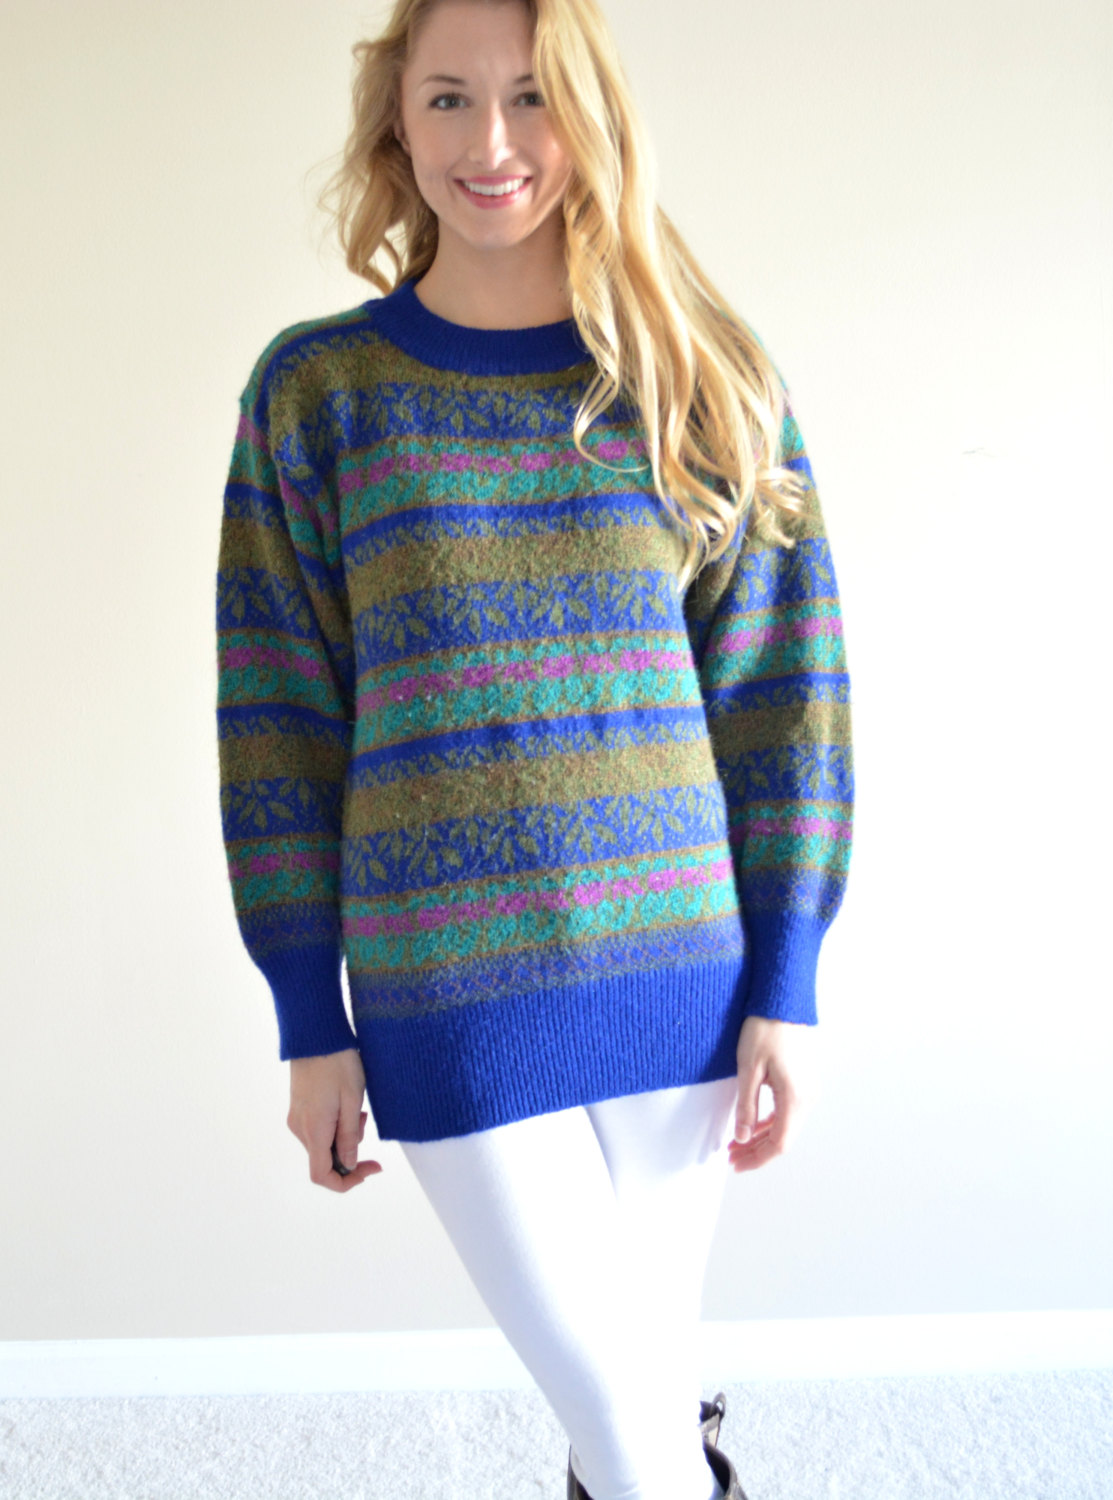 Sale sale vintage compagnie internationale limited express sweater beautiful striped royal blue patterned womens sweater colorful jumper sma